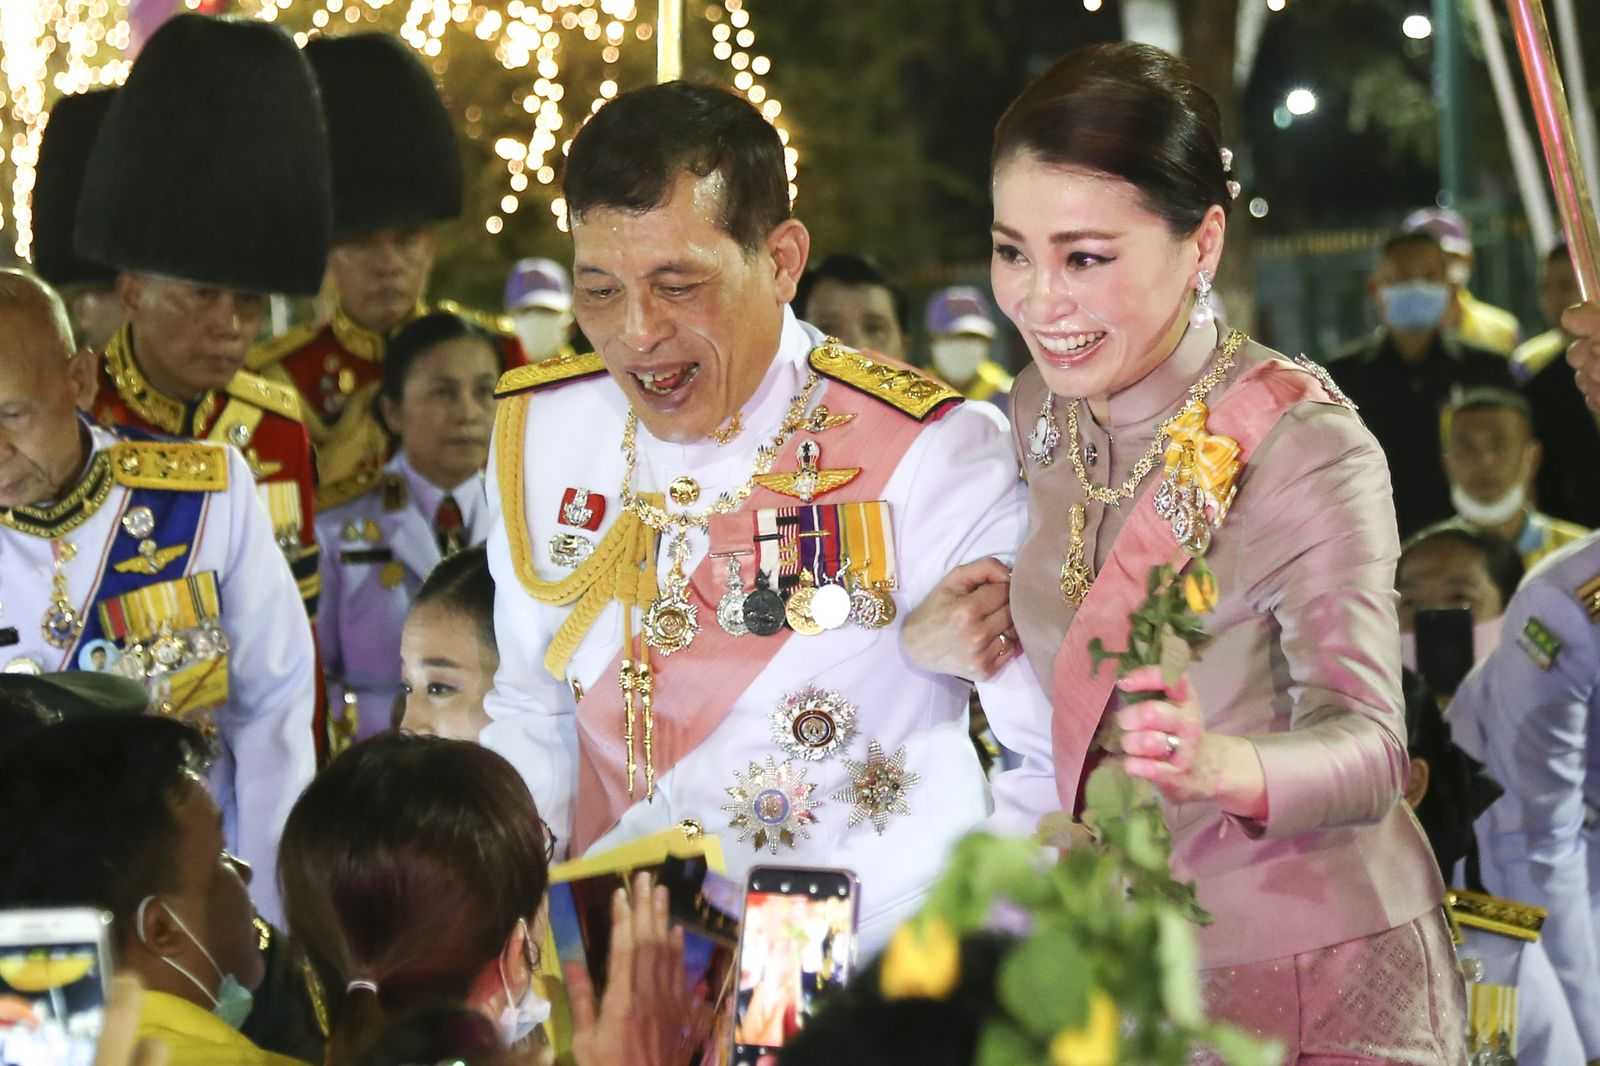 Thai King Maha Vajiralongkorn Bodindradebayavarangkun at the anniversary ceremony for late Thai King Chulalongkorn in Bangkok., Thailand - 16 Oct 2020